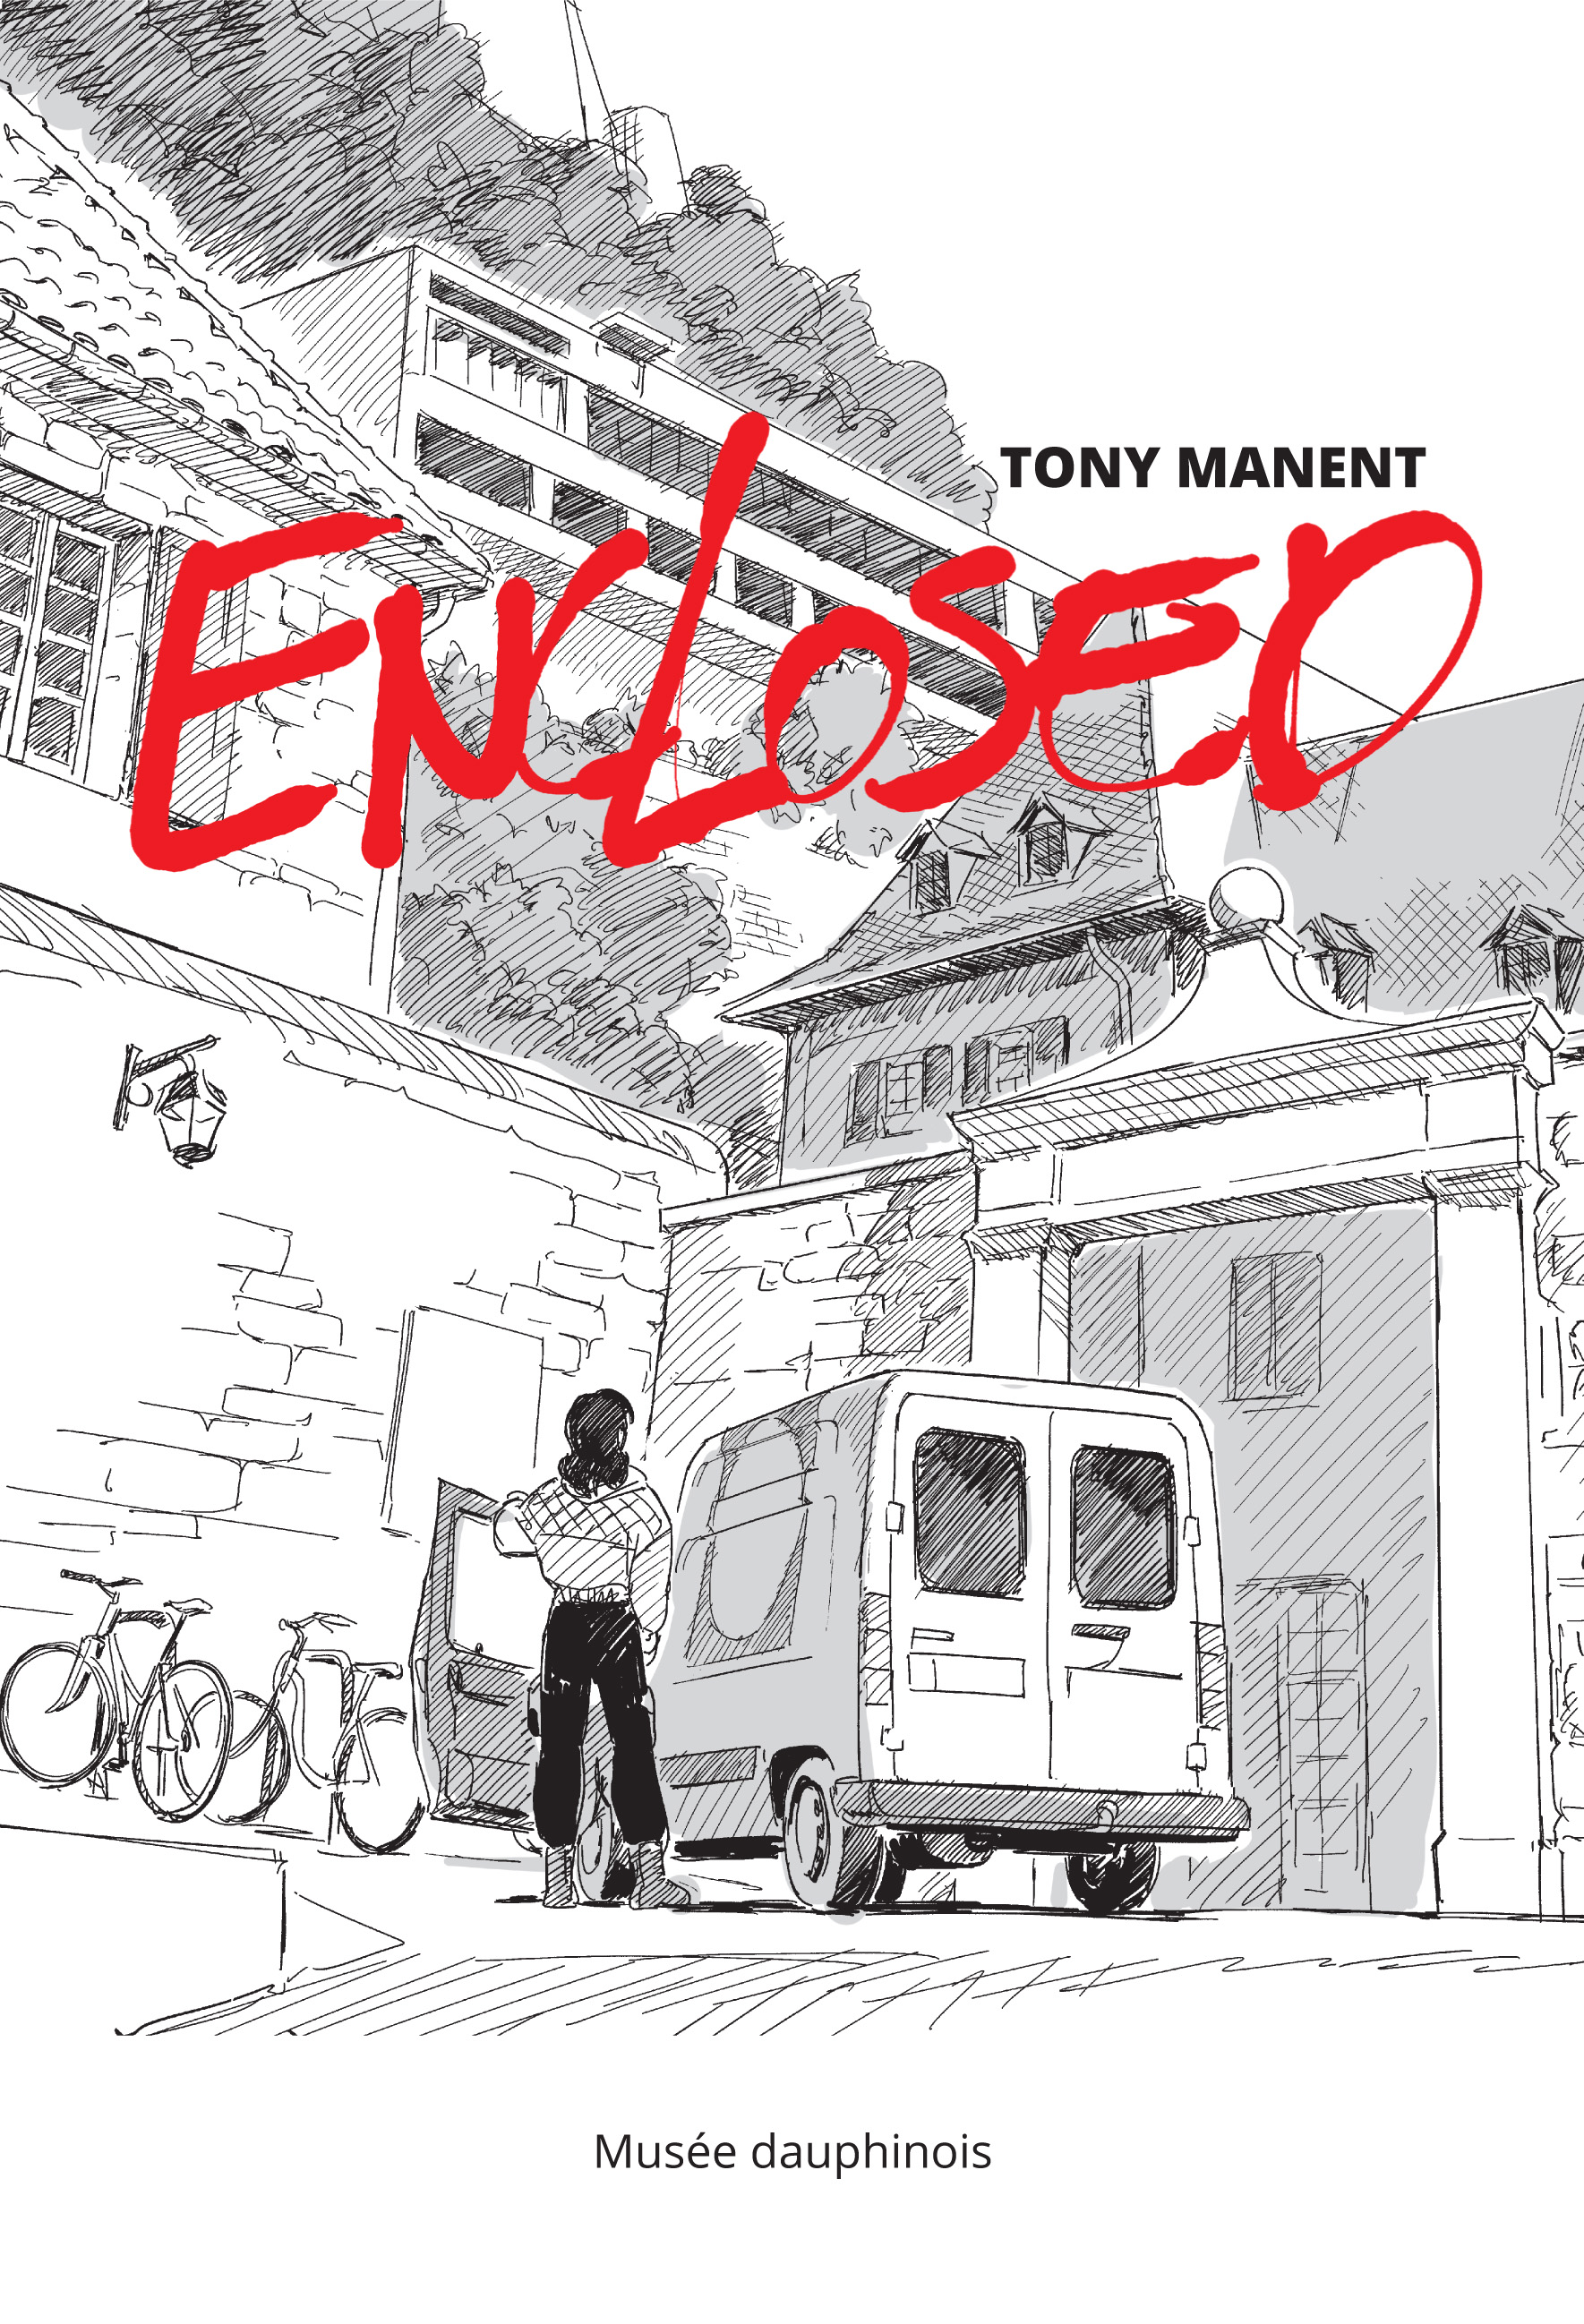 Couverture d'Eclosed de Tony Manent